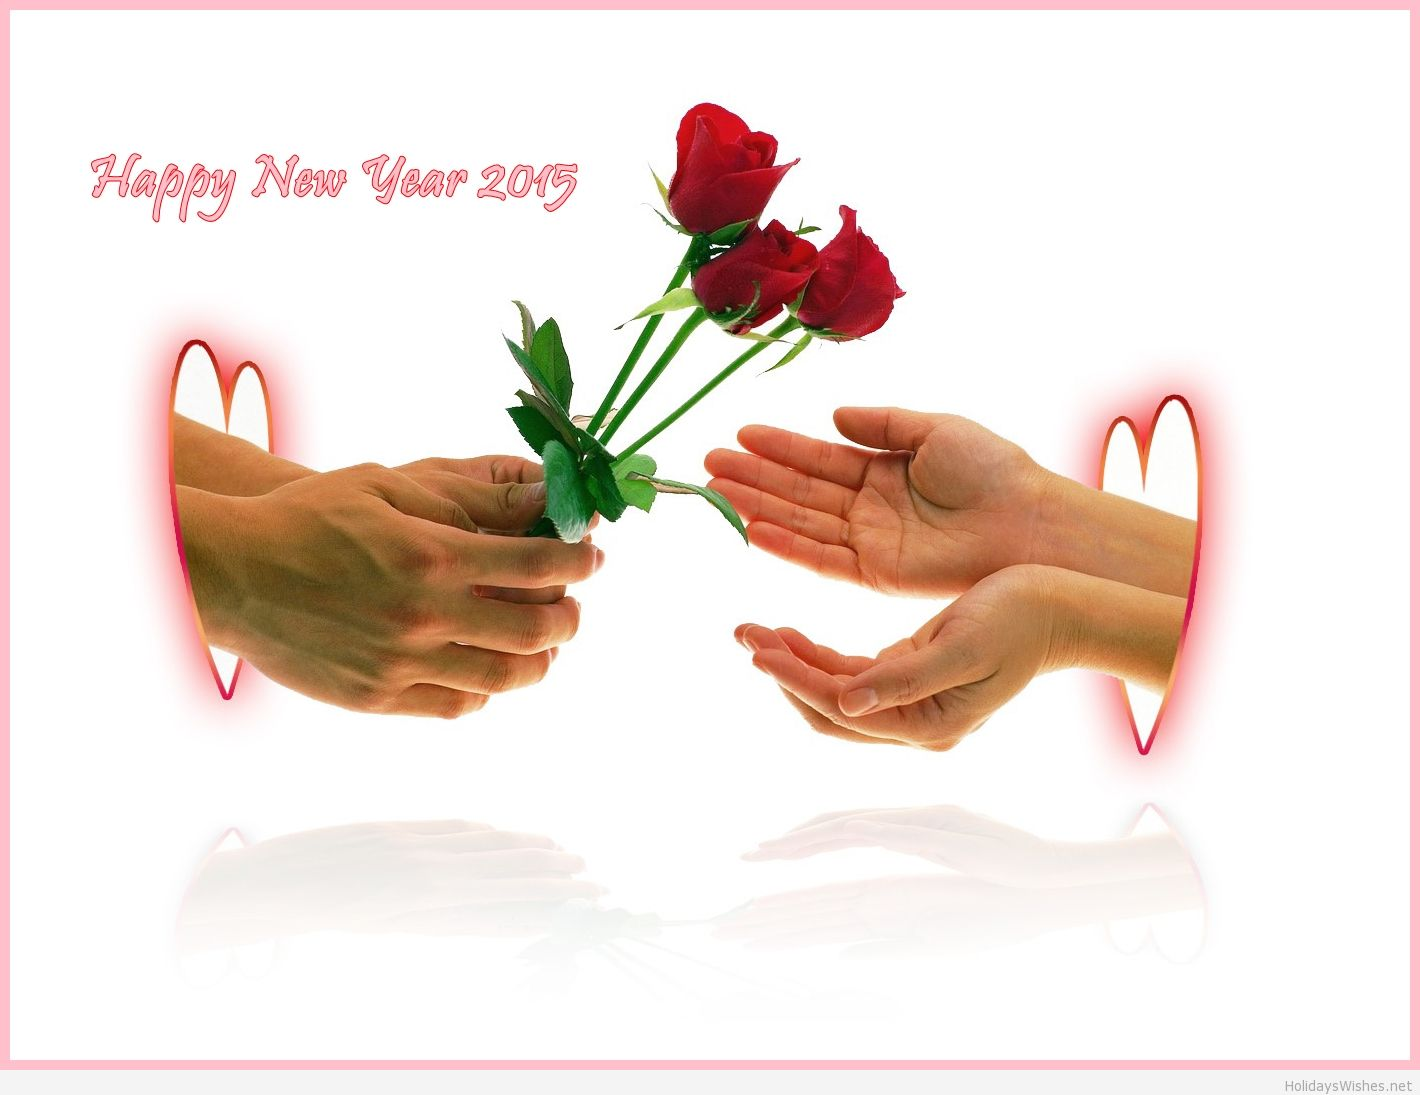 download Happy new year 2015 love propose wallpaper Desktop 1420x1095